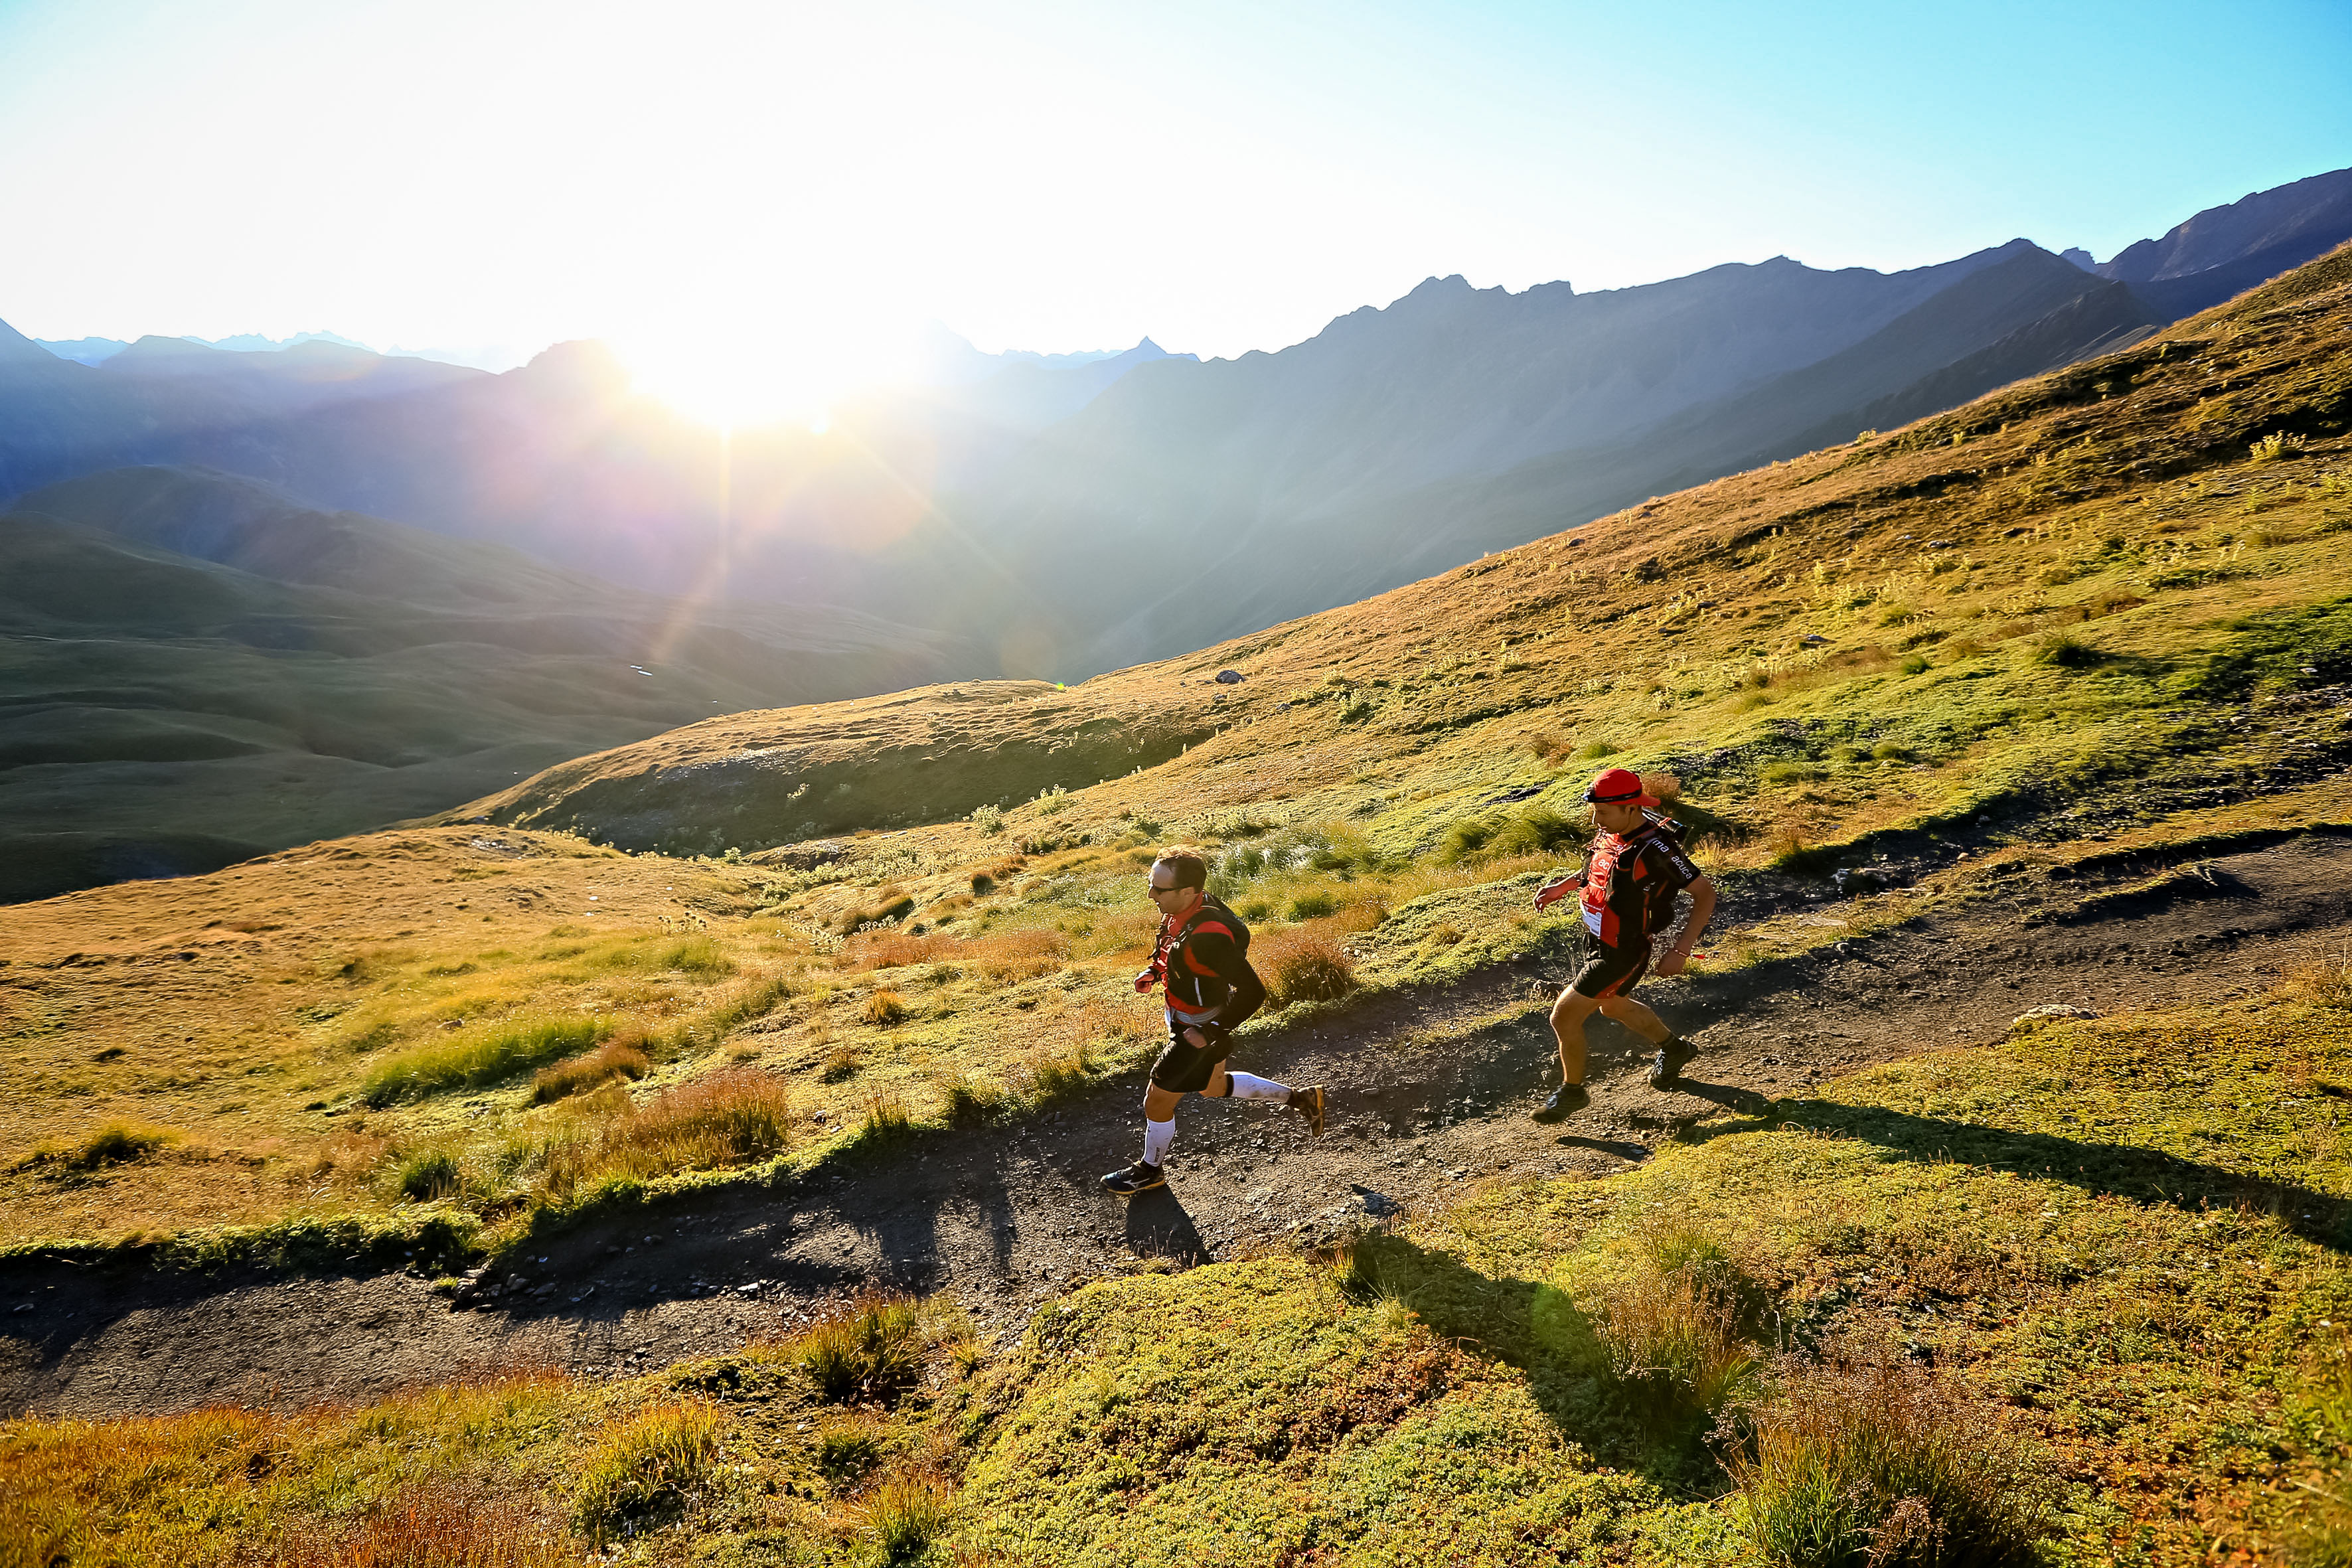 Trail runners in front of sun in the mountains